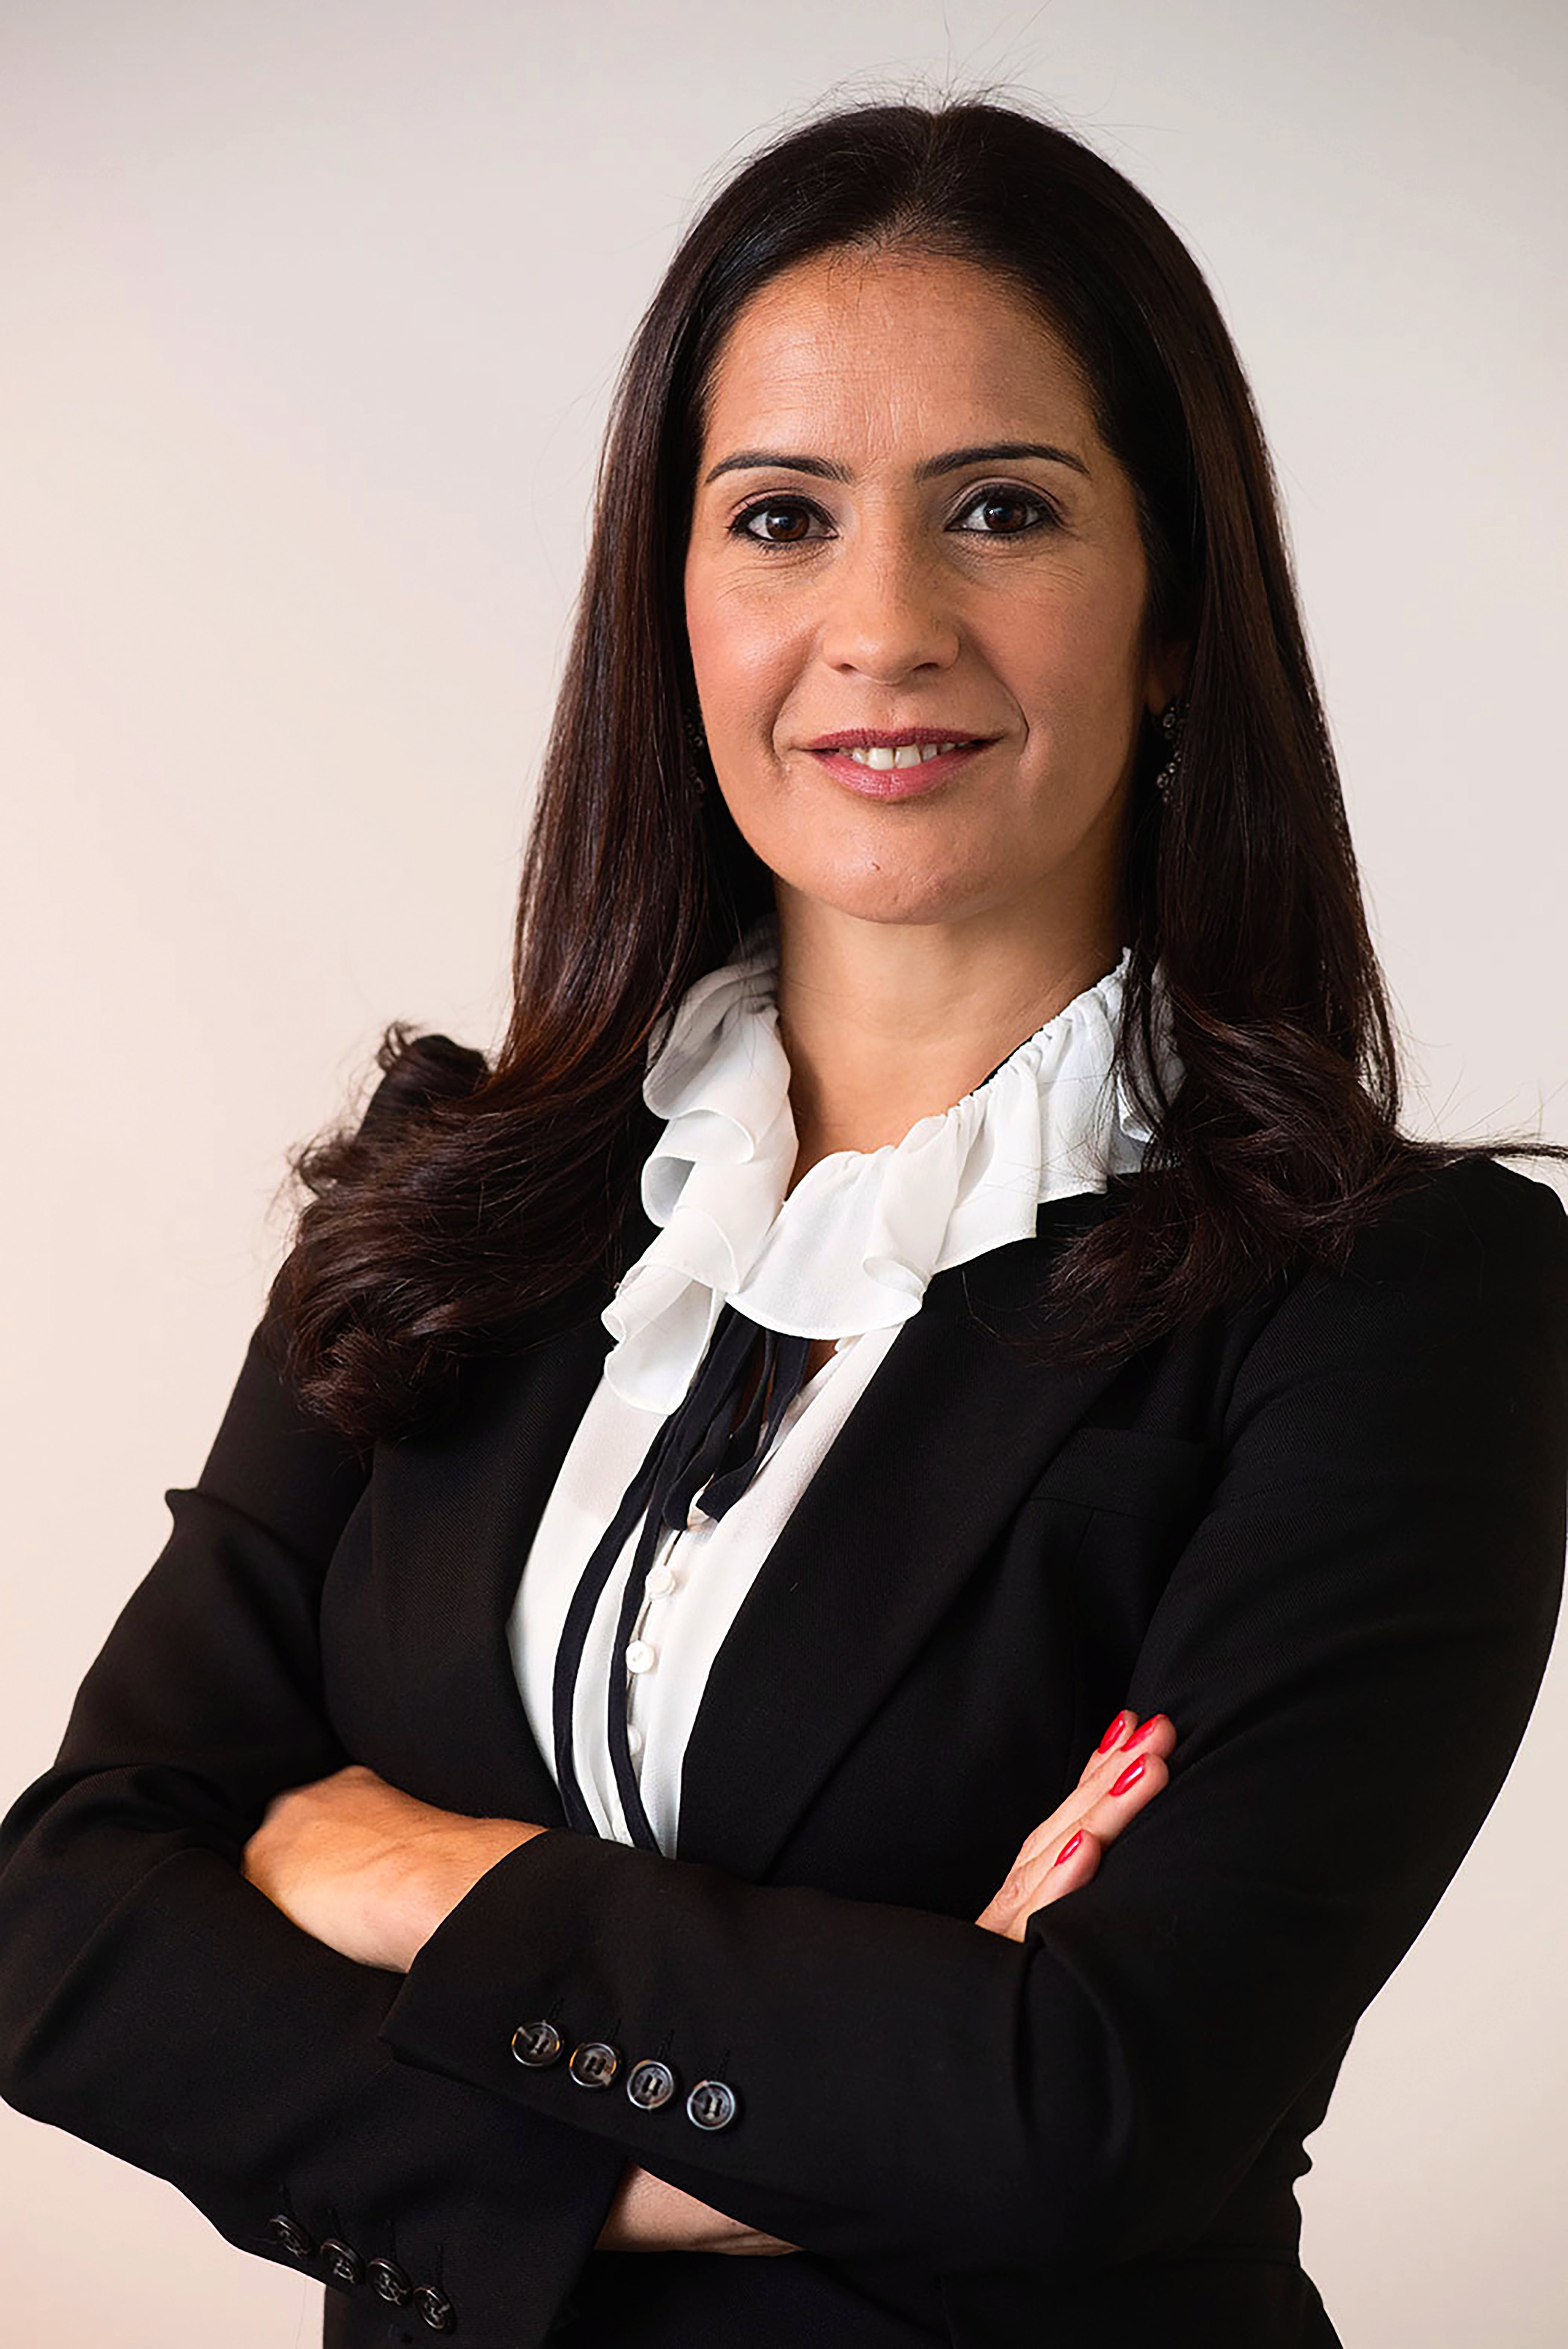 Mafalda Seabra Pereira, partner, AVM Advogados, interviewed for Angola Mozambique investment feature